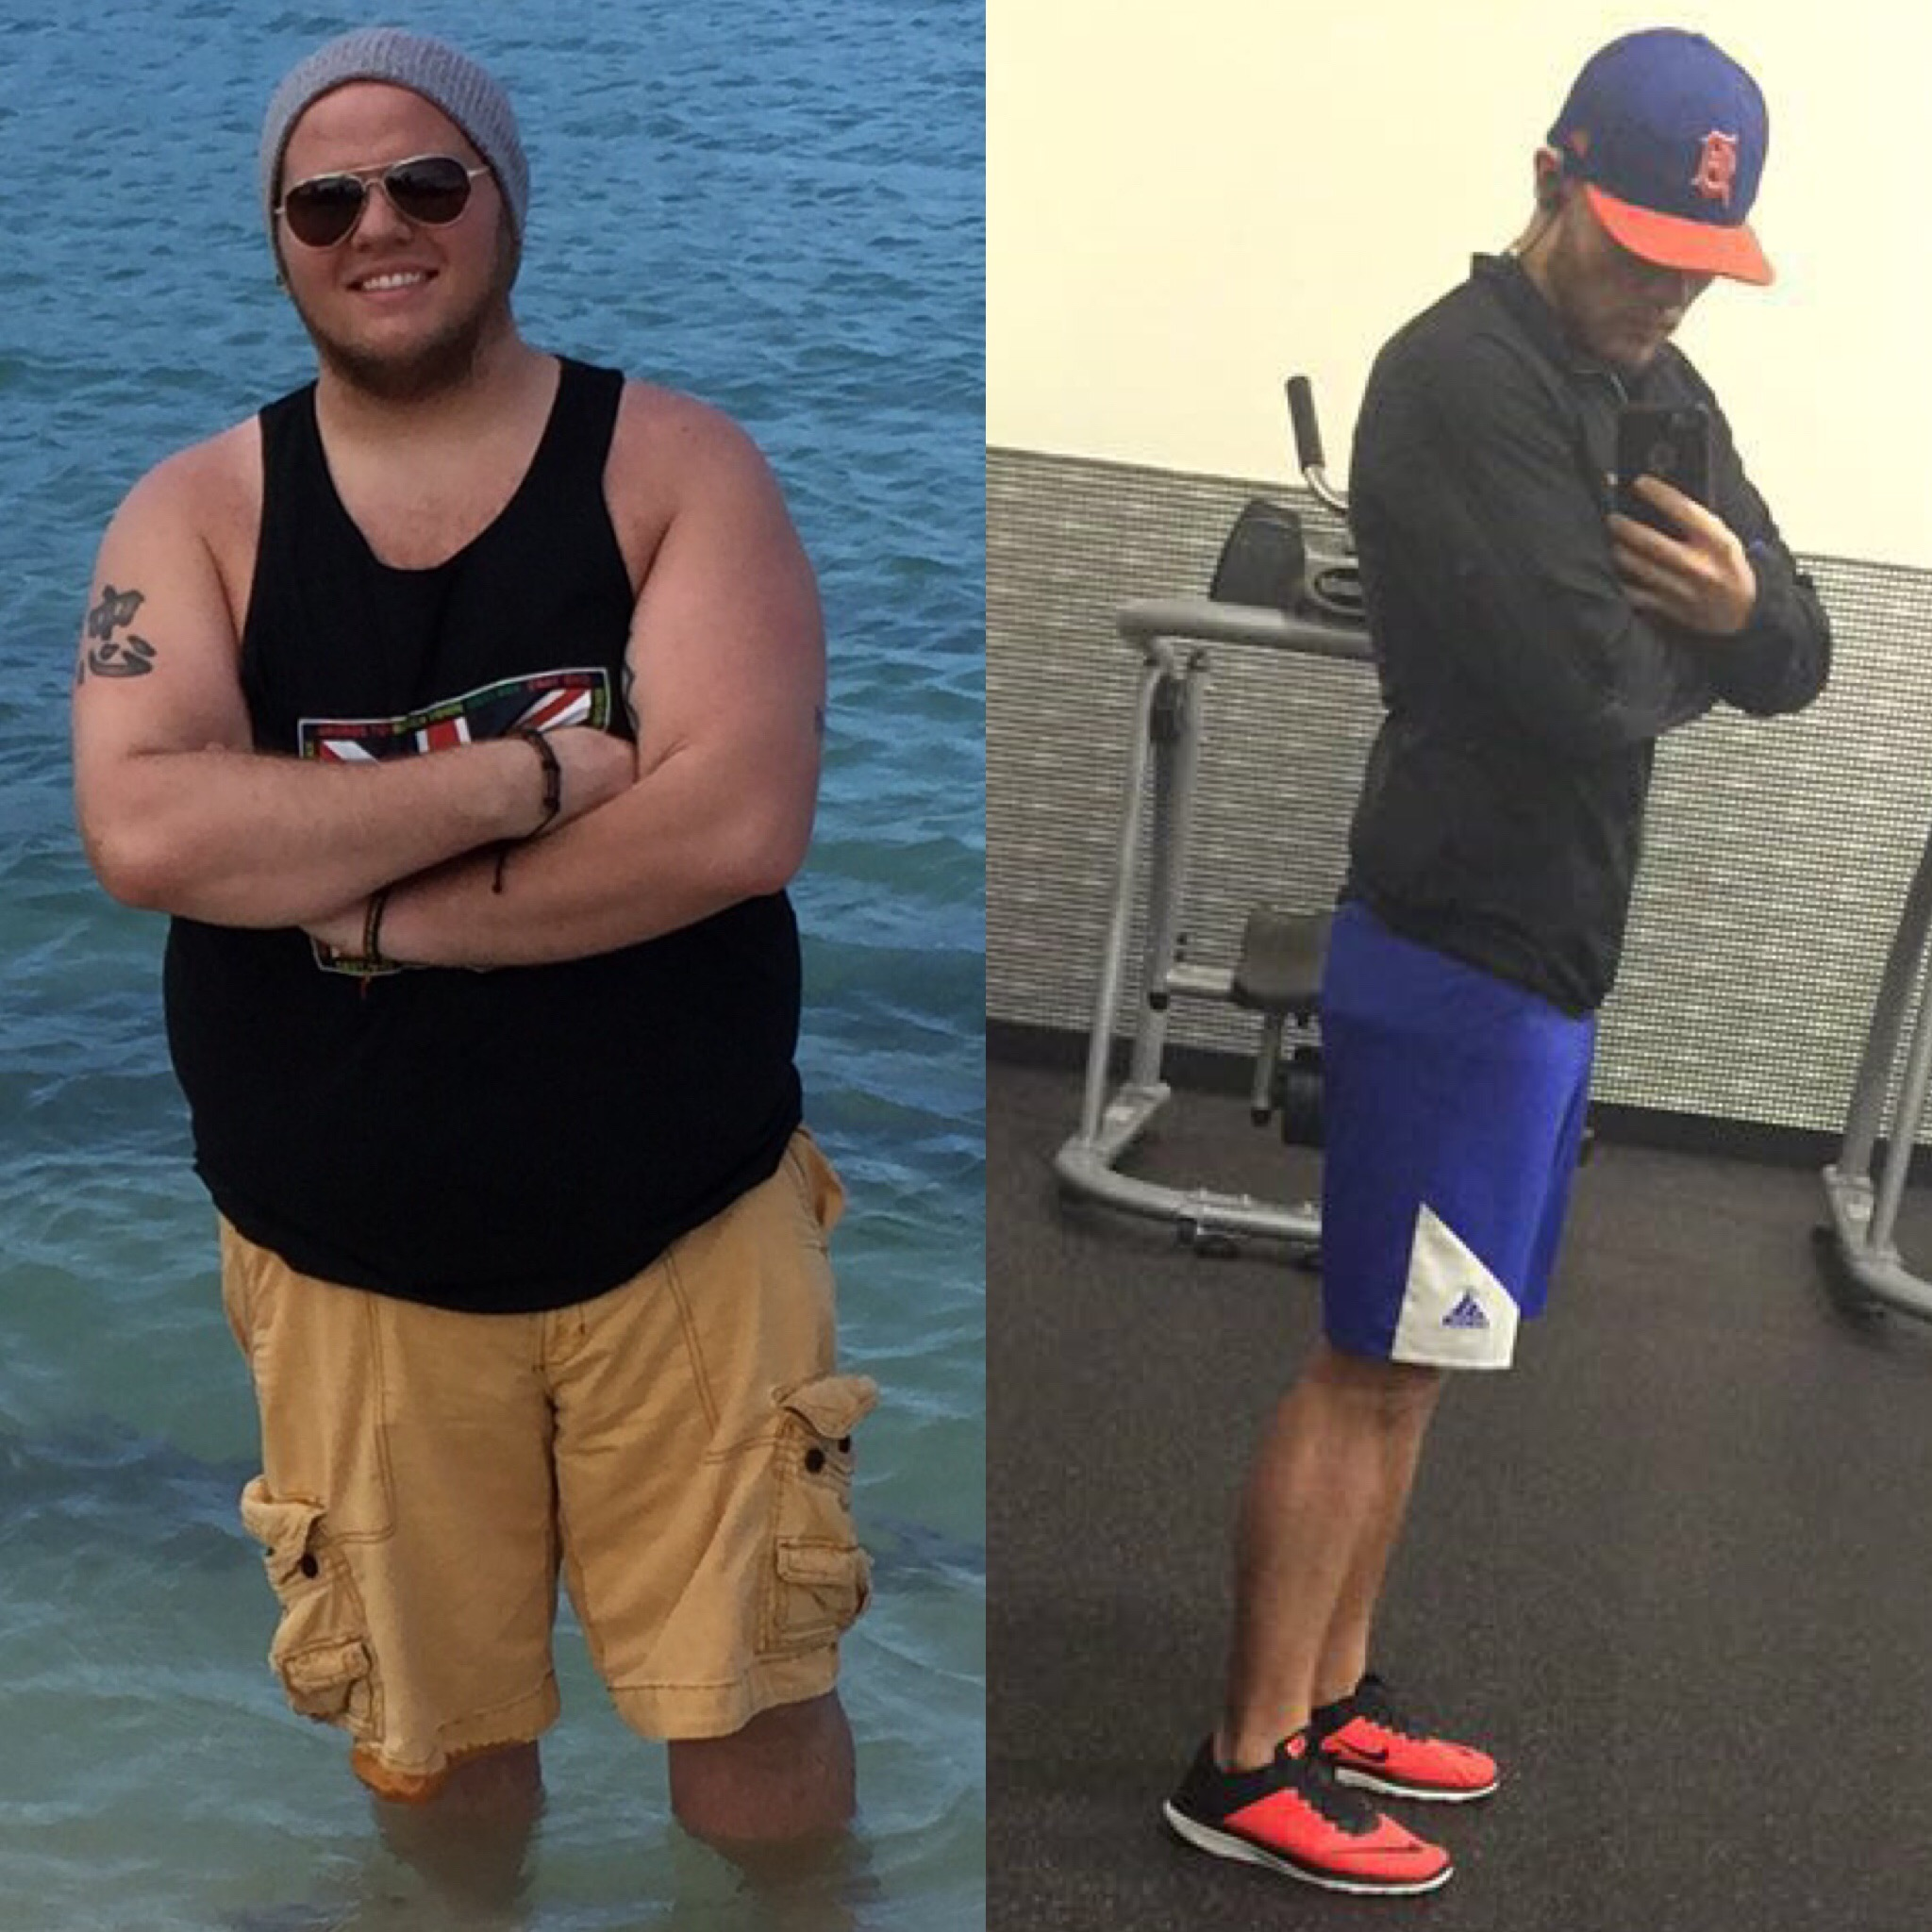 I lost 98 pounds! Read my weight loss success story and see my before and after weight loss pictures at the website The Weigh We Were. Hundreds of success stories, articles and photos of weight loss diet plans for men, tips for how to lose weight for men. Build muscle and lose belly fat with healthy male weight loss transformation pics for inspiration!